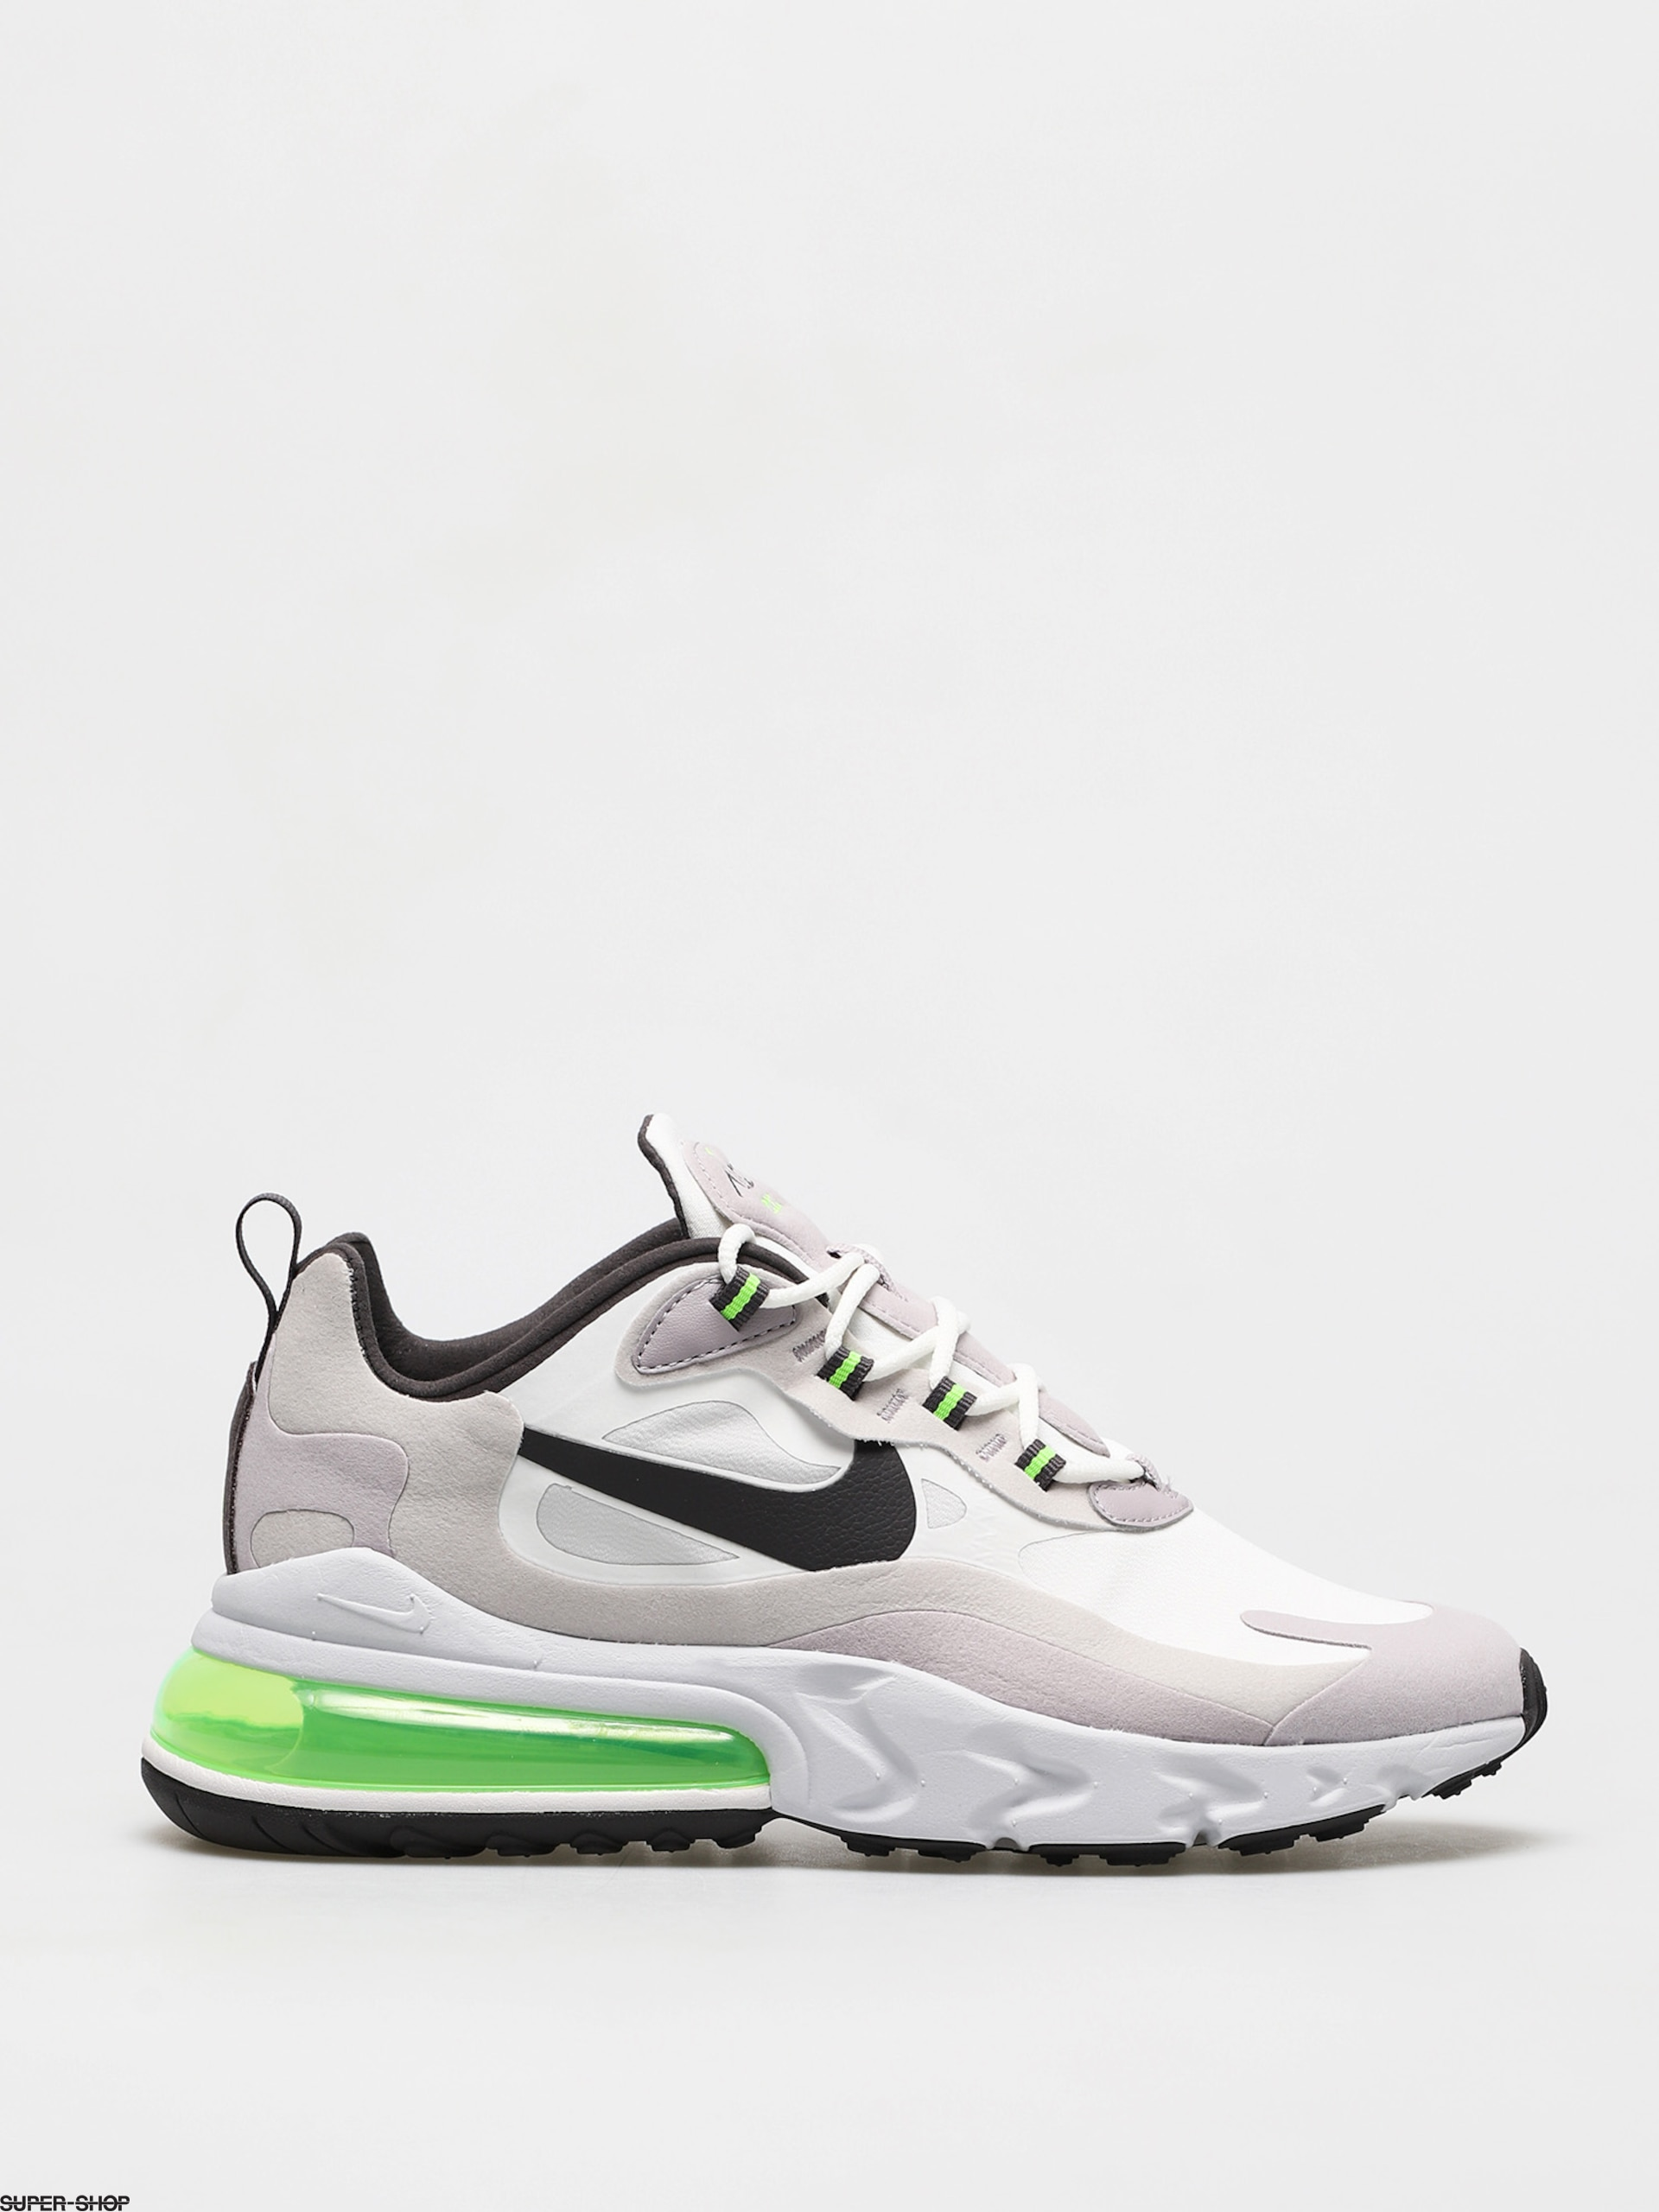 are nike 270 running shoes